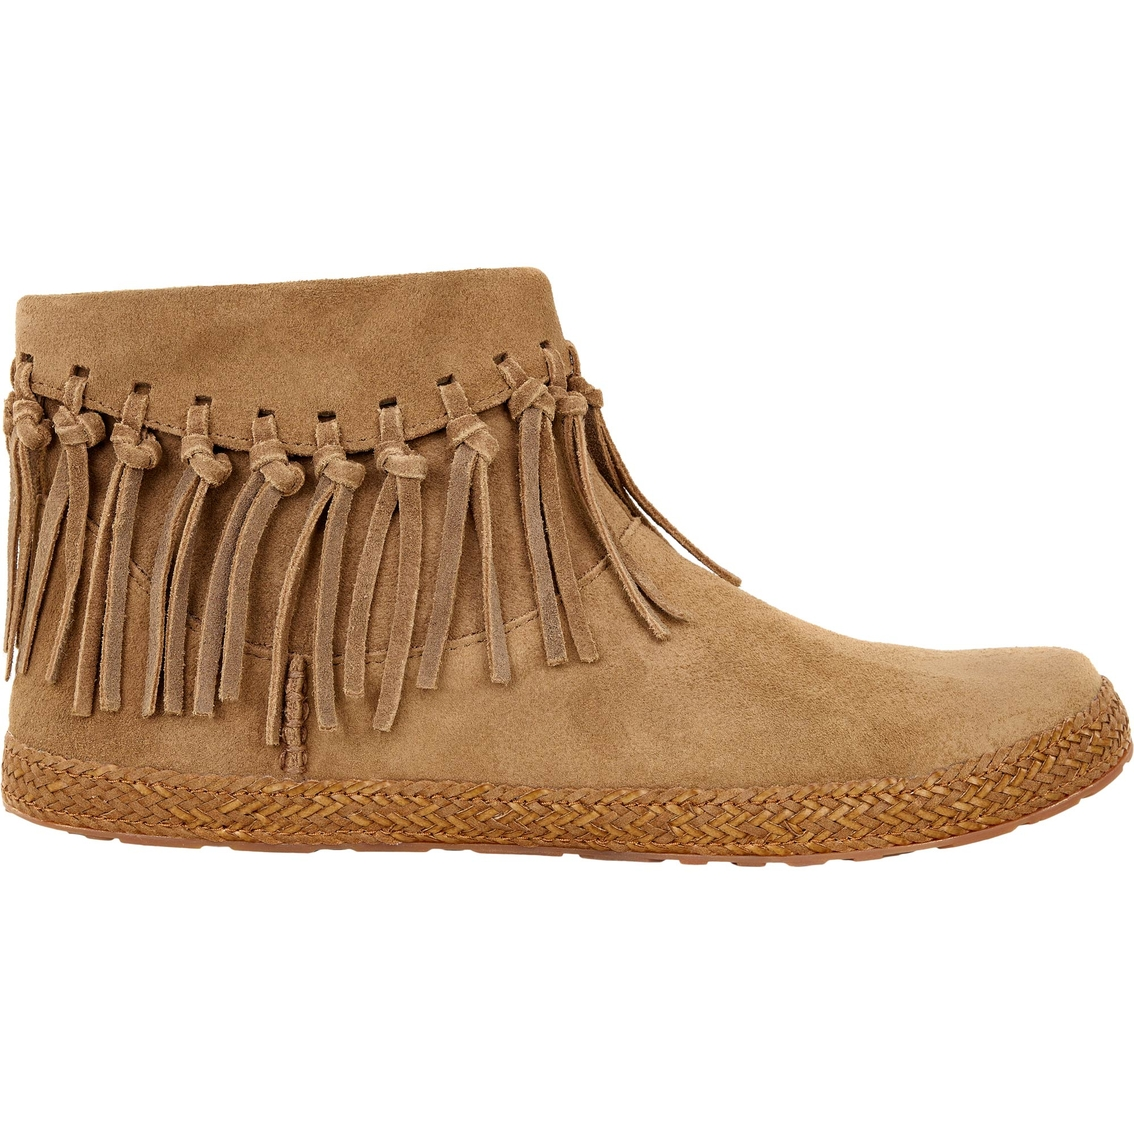 962133bff6d Ugg Shenendoah Moccasin Booties | Booties | Shoes | Shop The Exchange